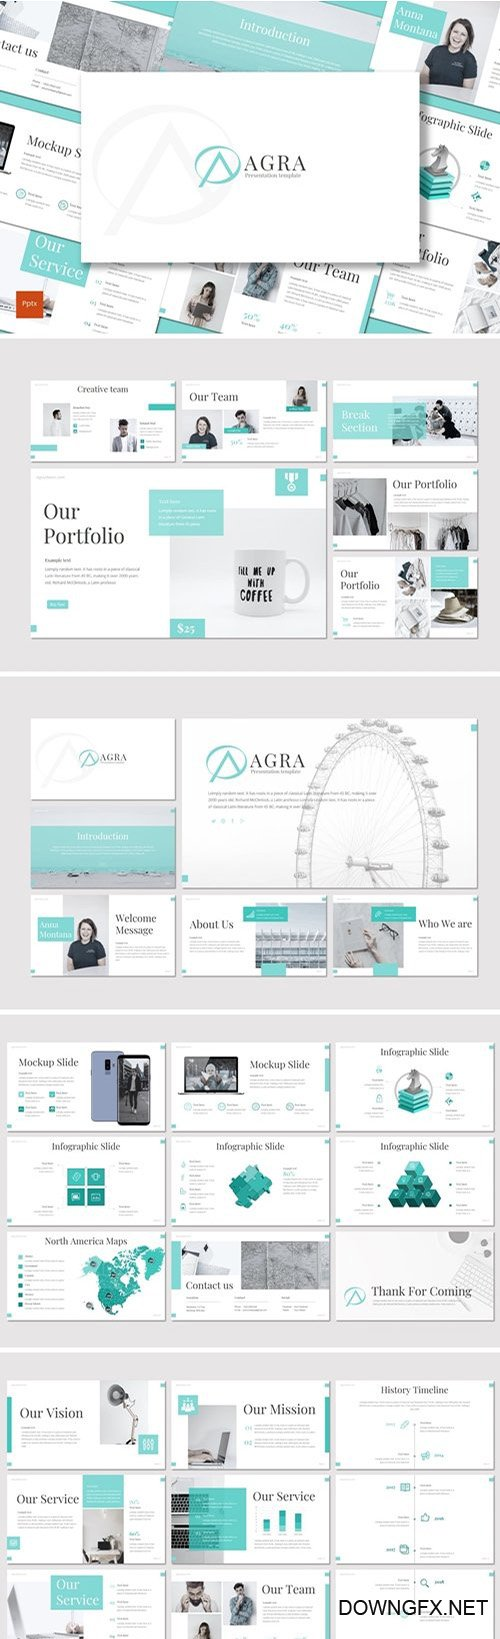 Agra - Powerpoint, Keynote and Google Slides Templates